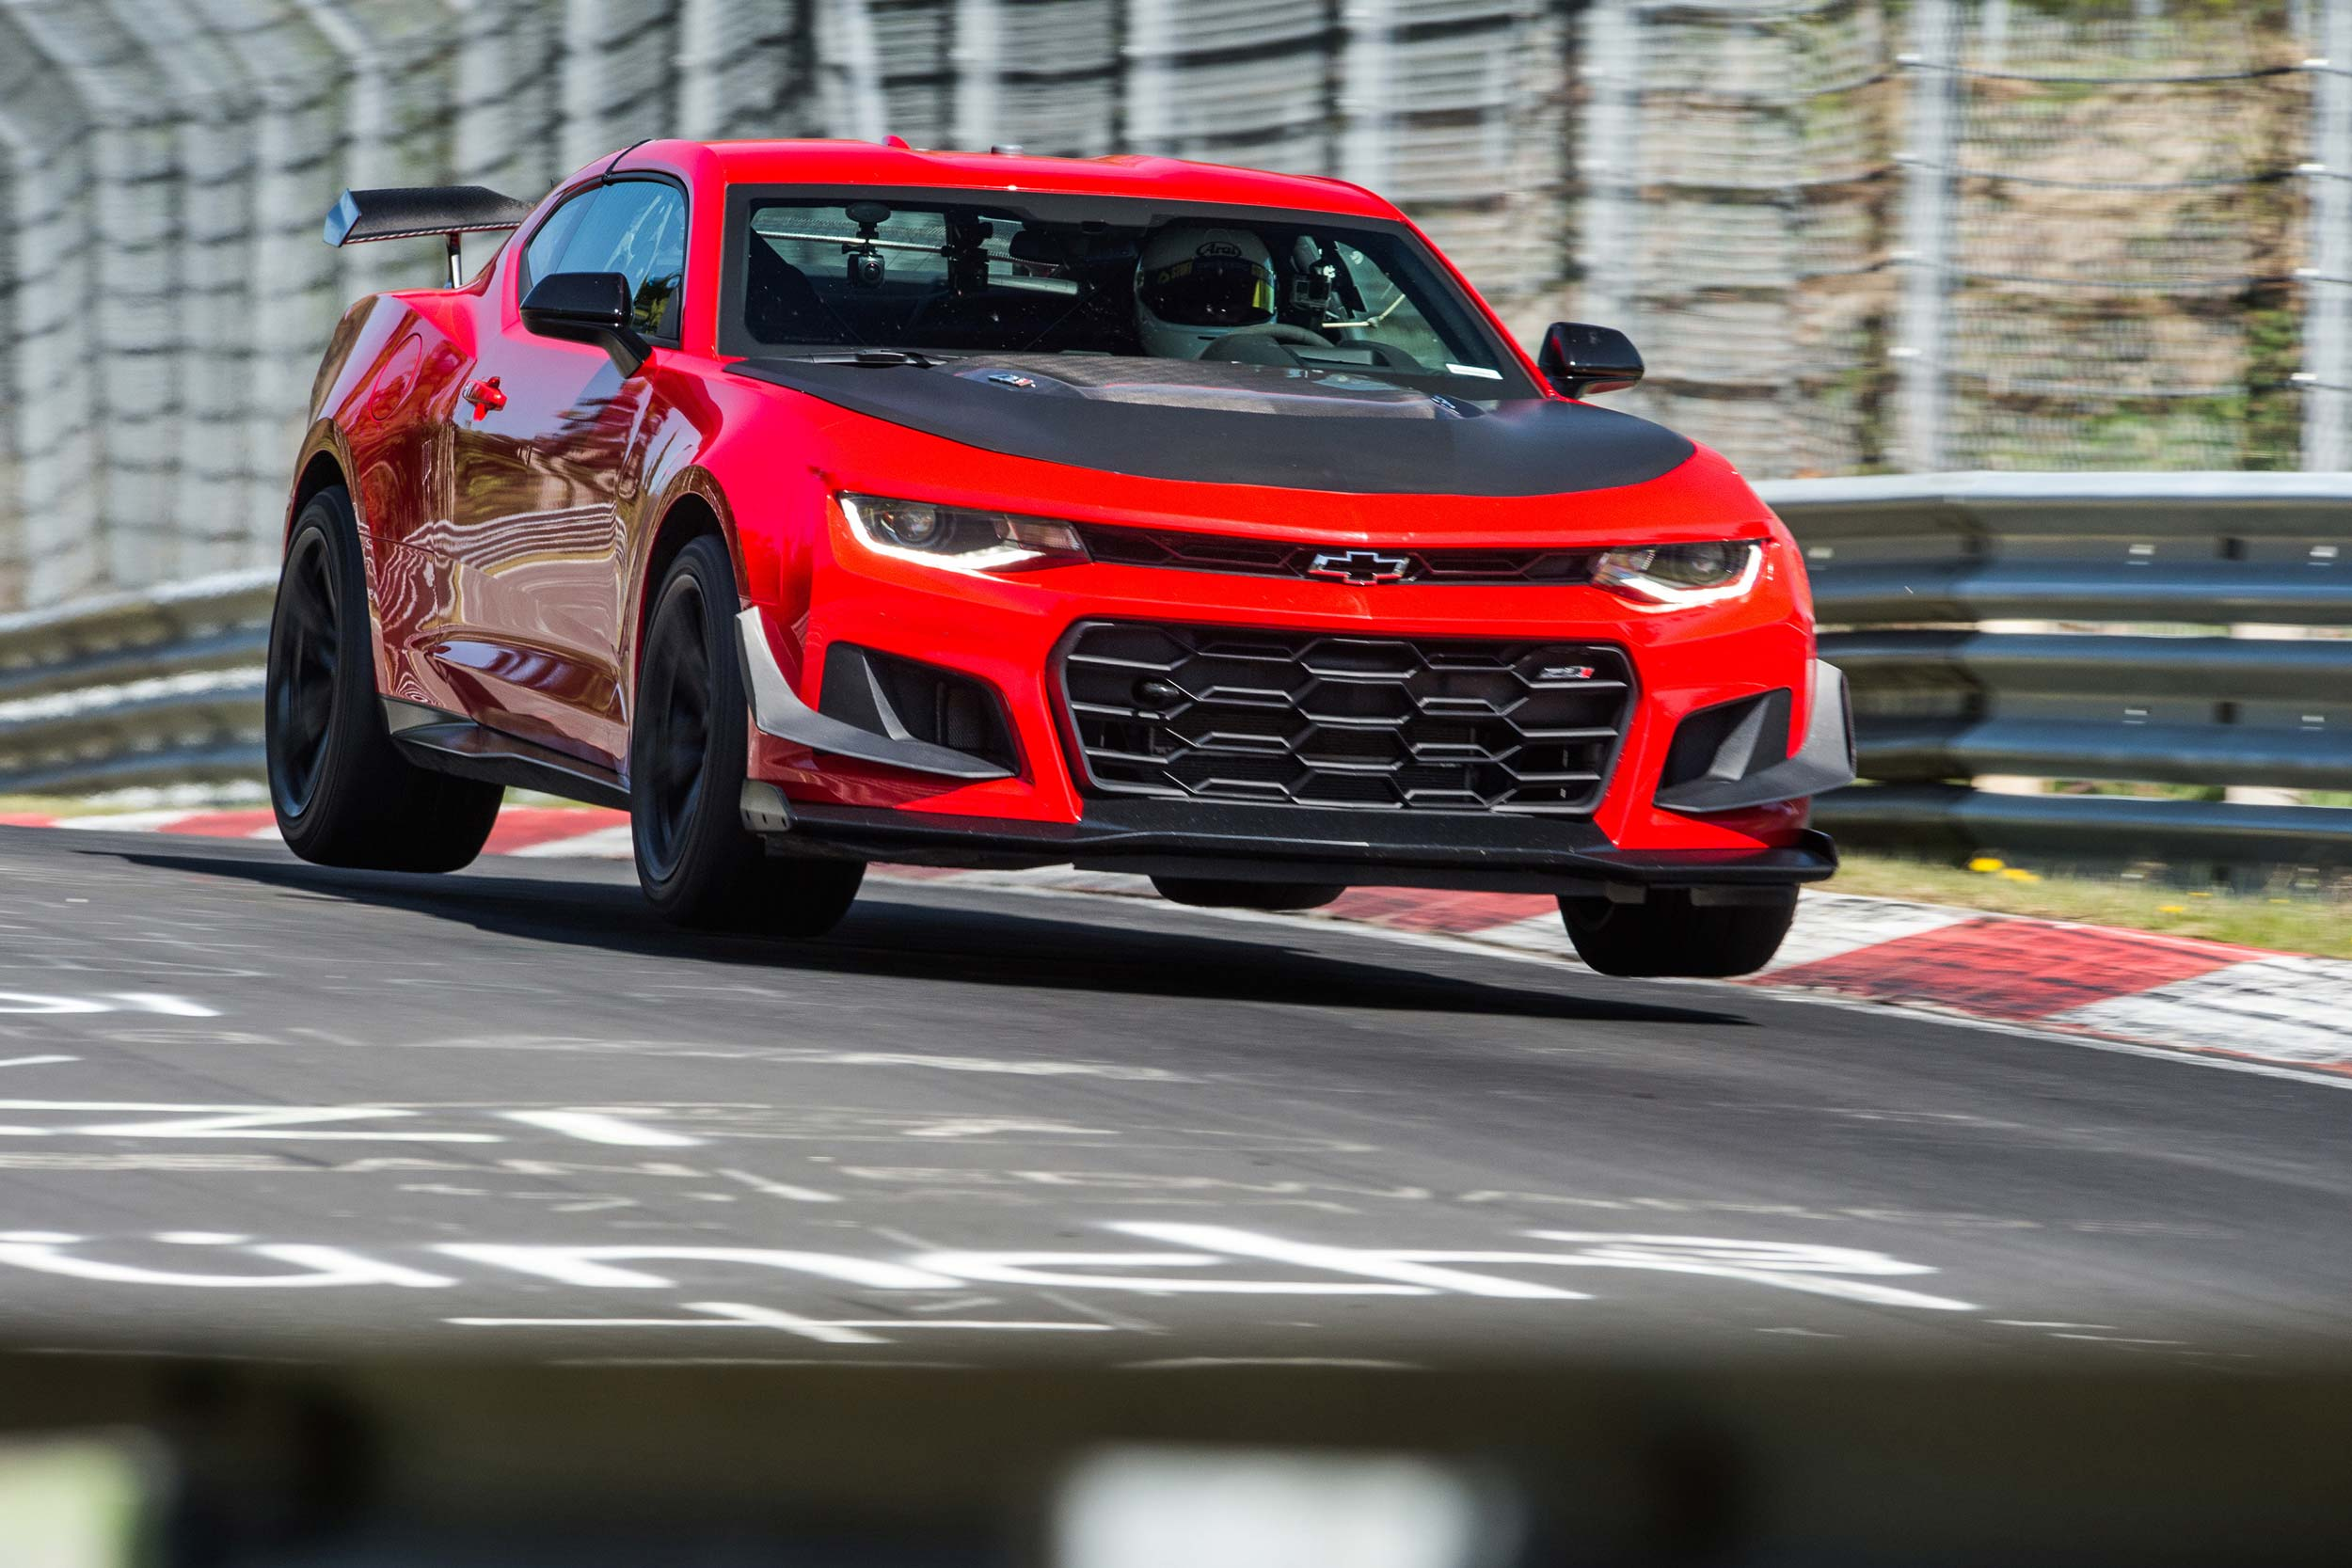 What Are The Fastest American Cars Around The Nurburgring